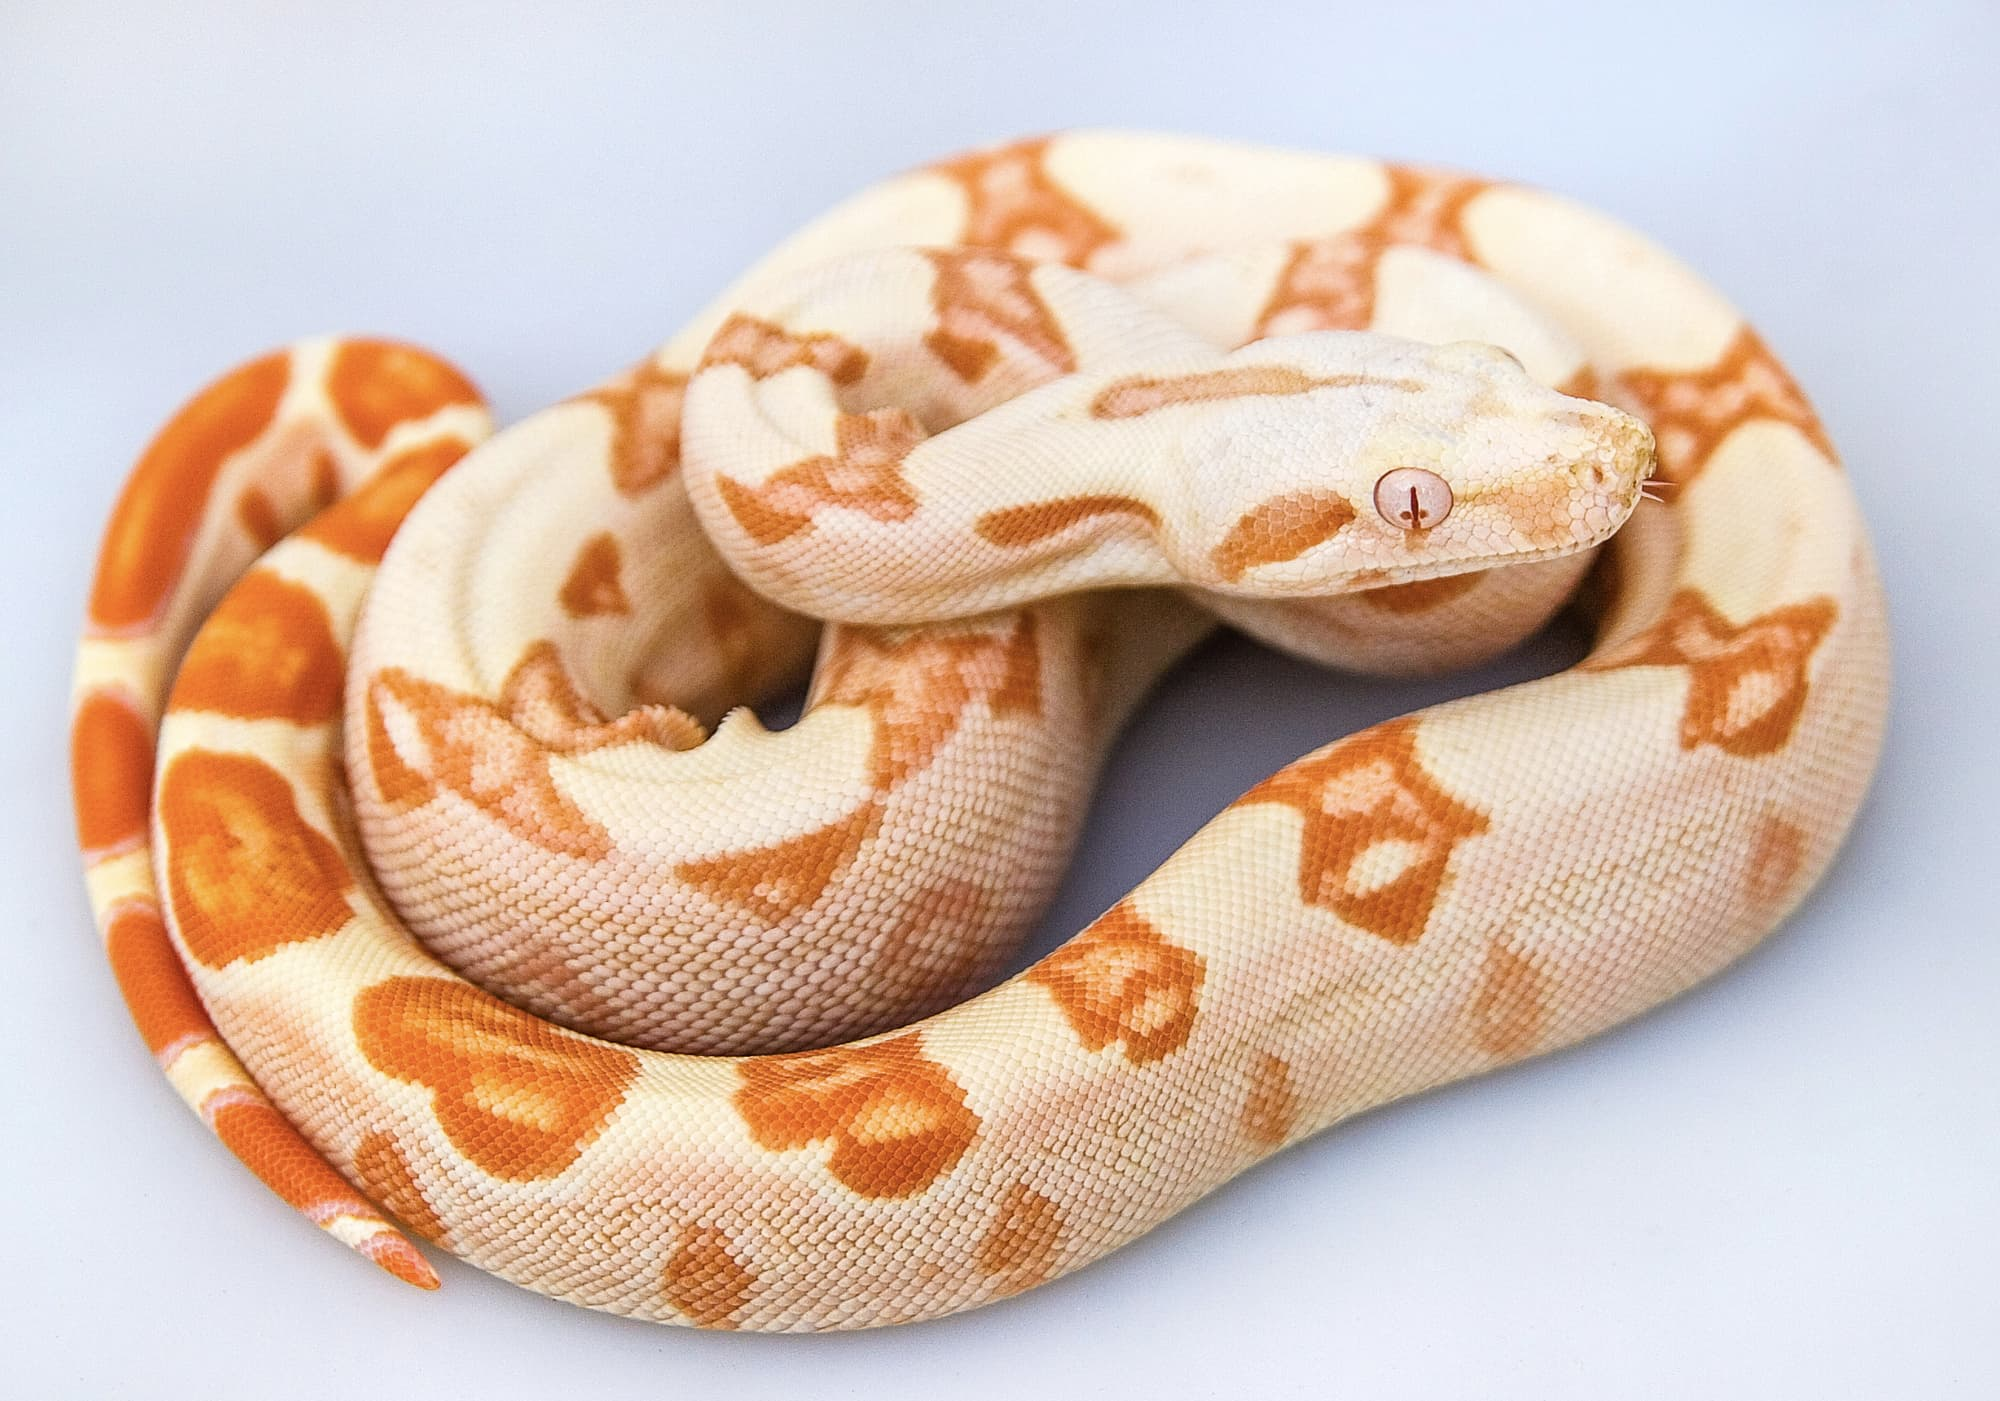 Orange and white snake in studio with white background